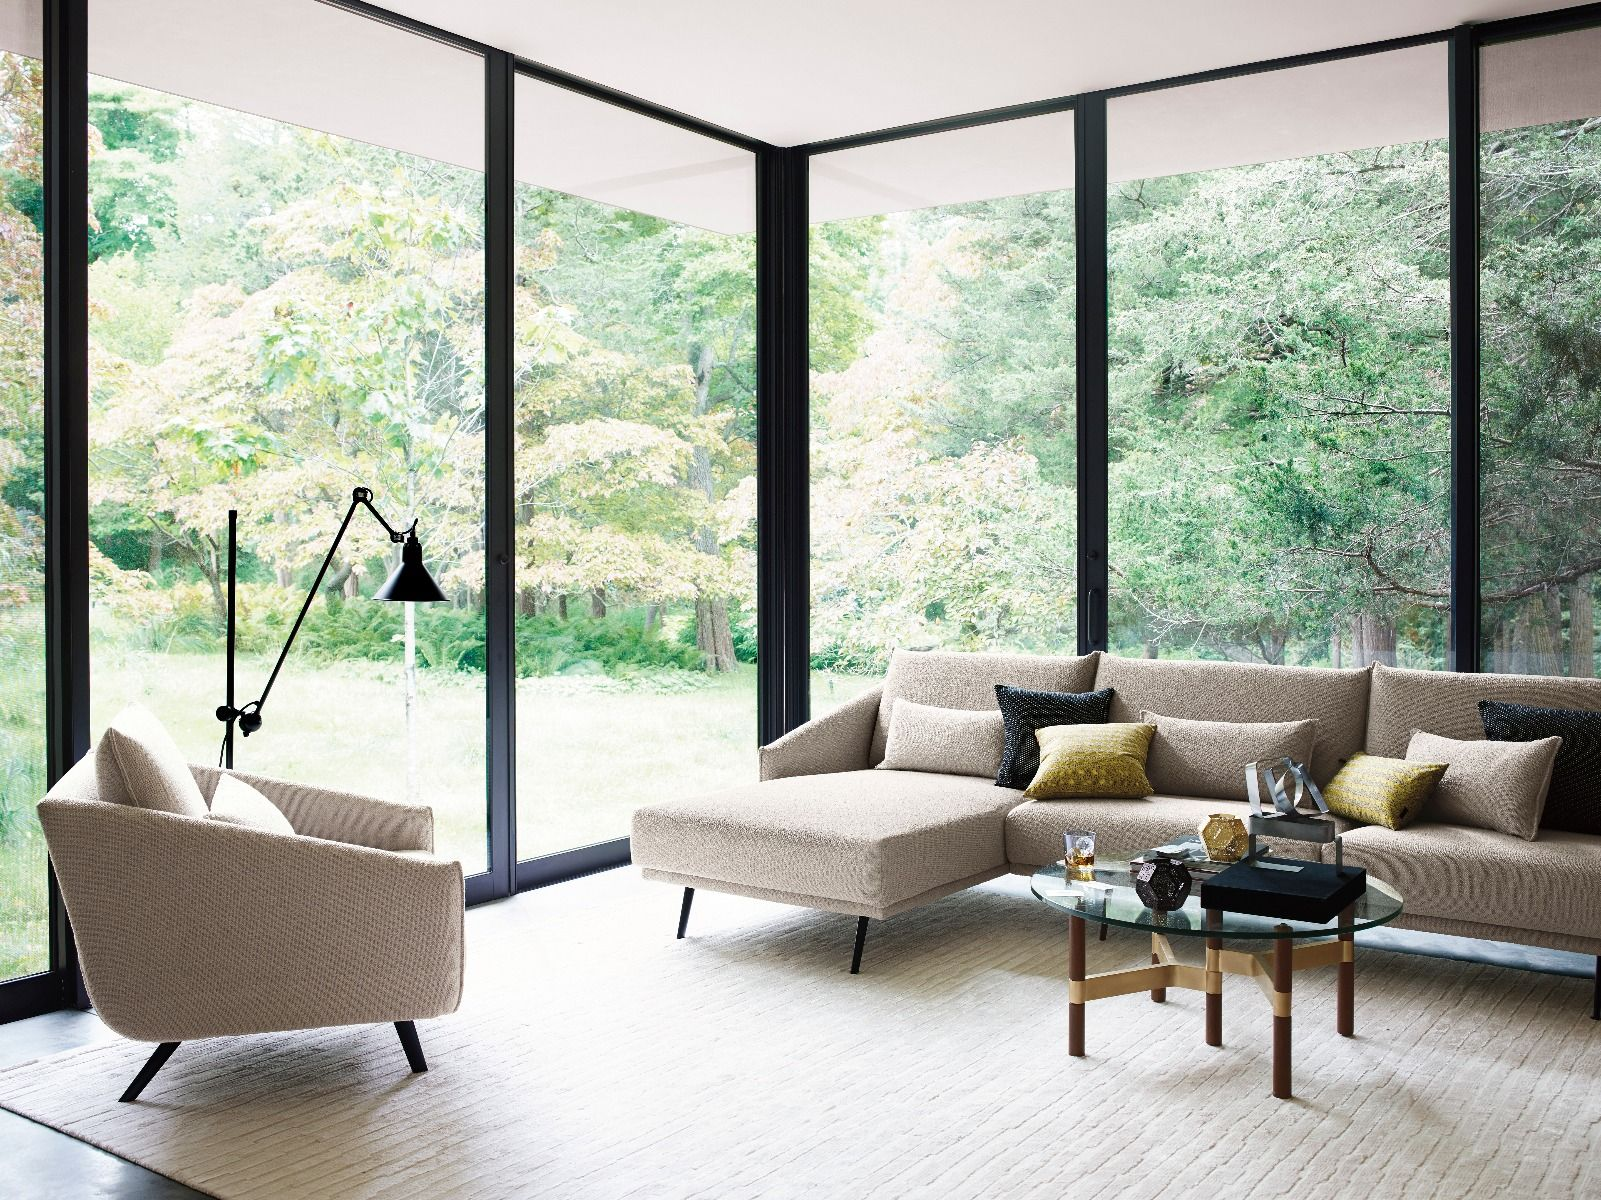 STUA Costura Sofa Chaise Longue in glass fronted house